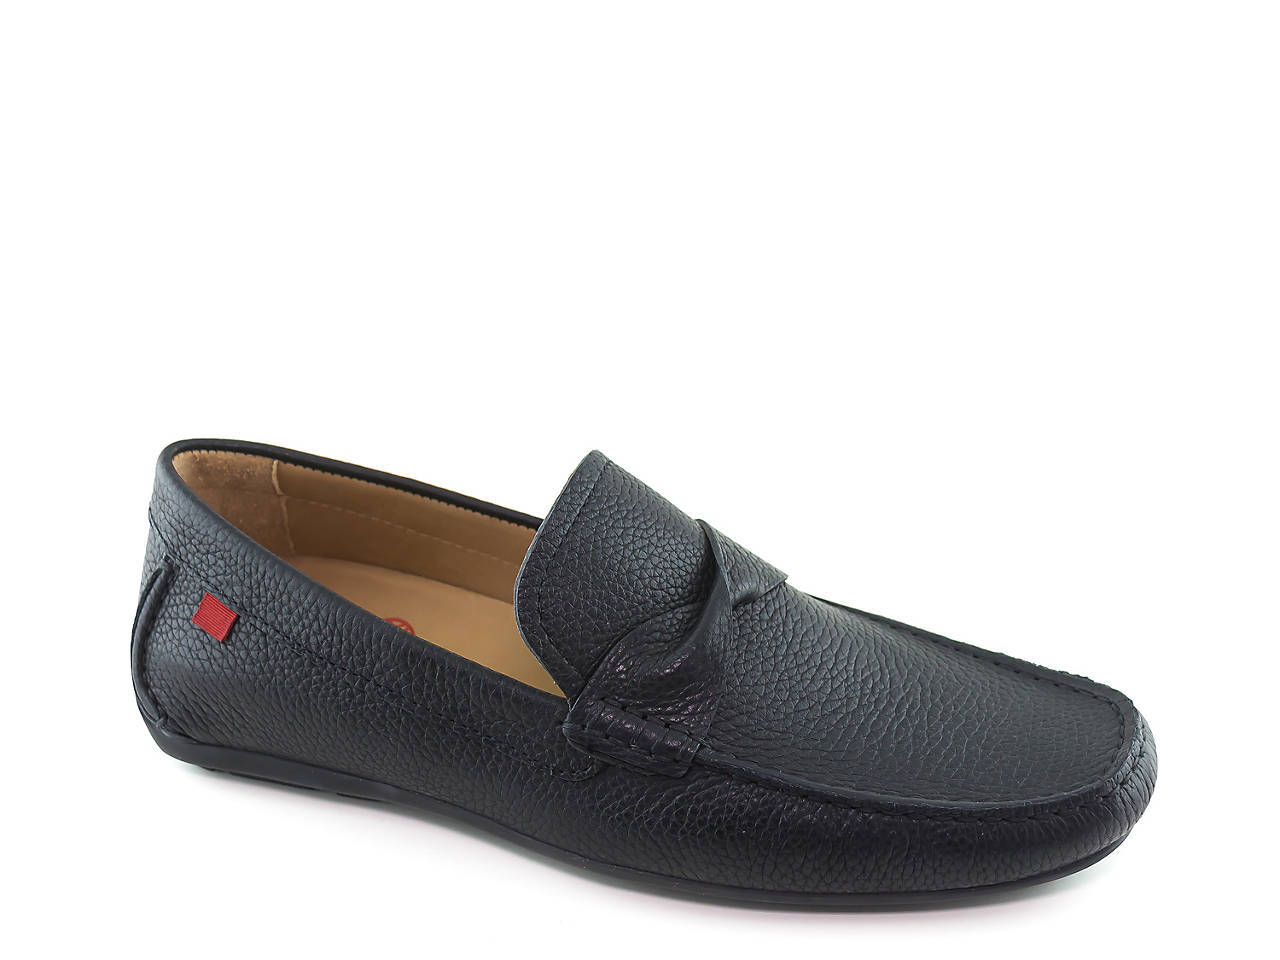 69c727a2bf3084 Marc Joseph New York Plymouth Loafer Men s Shoes